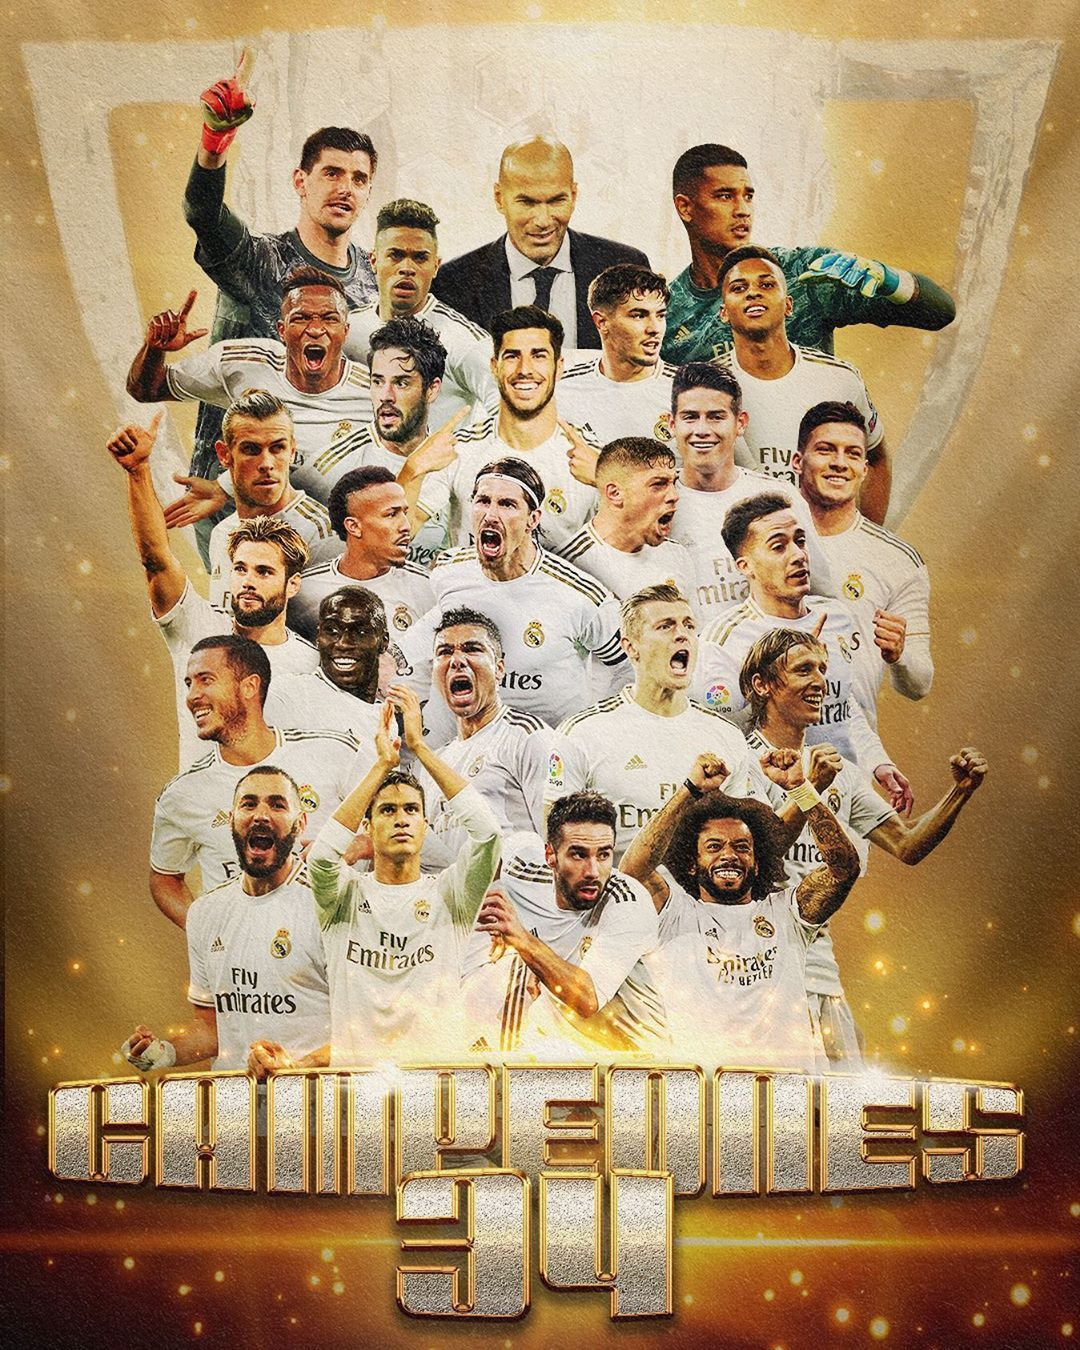 Real Madrid C F 34 On Instagram We Are The Champions Somos Campeones Laliga 2019 20 34ligas Rea In 2020 Real Madrid Wallpapers Real Madrid Madrid